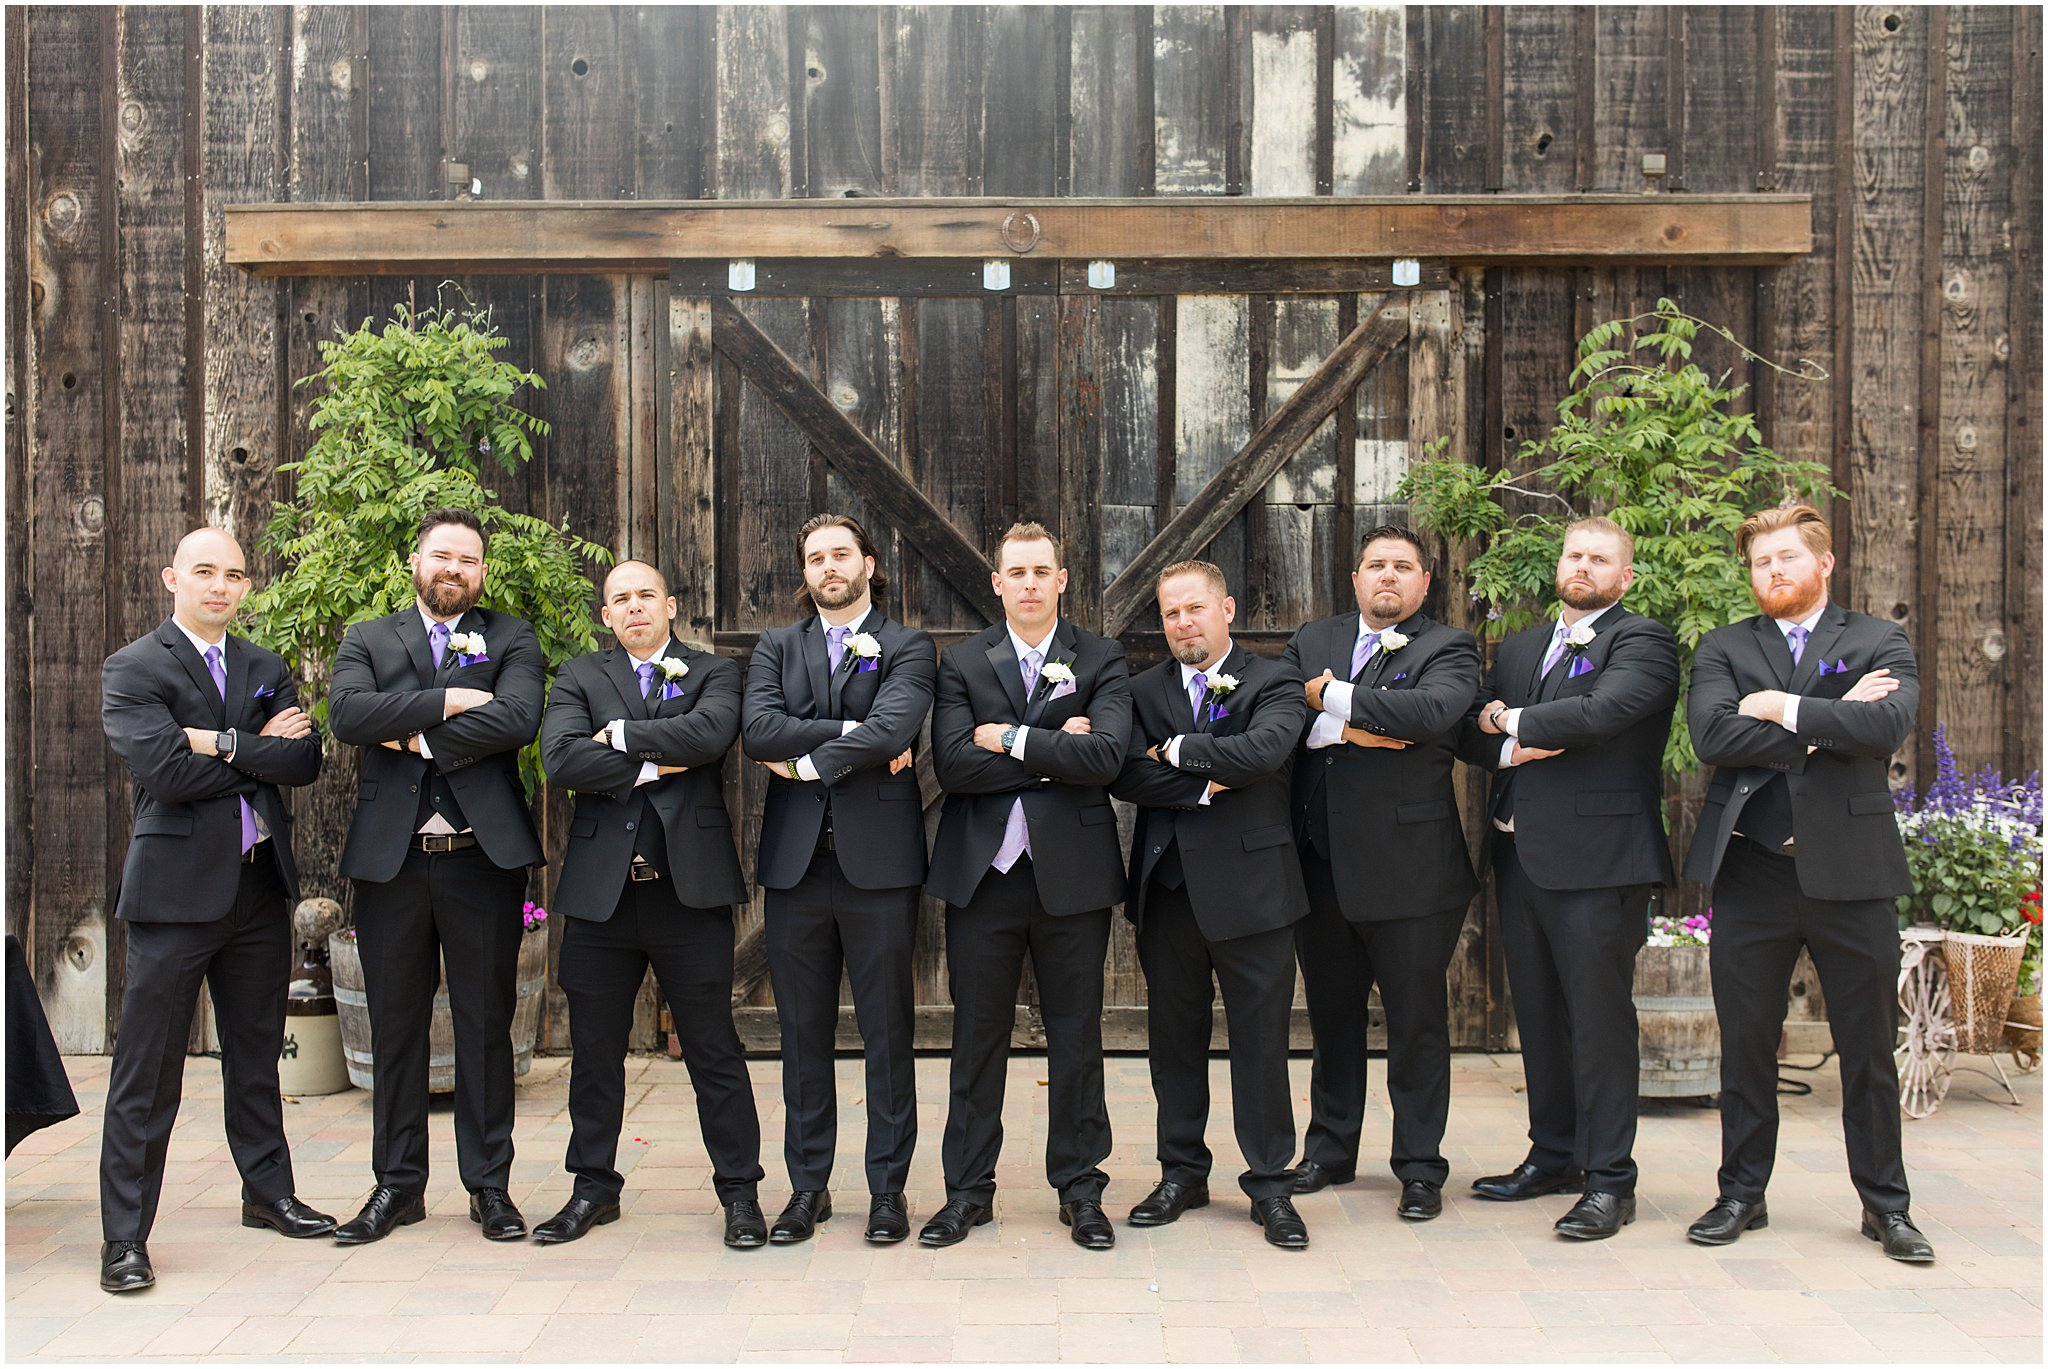 2019 wedding san juan bautista hacienda de leal vineyards bay area wedding photographer_0034.jpg